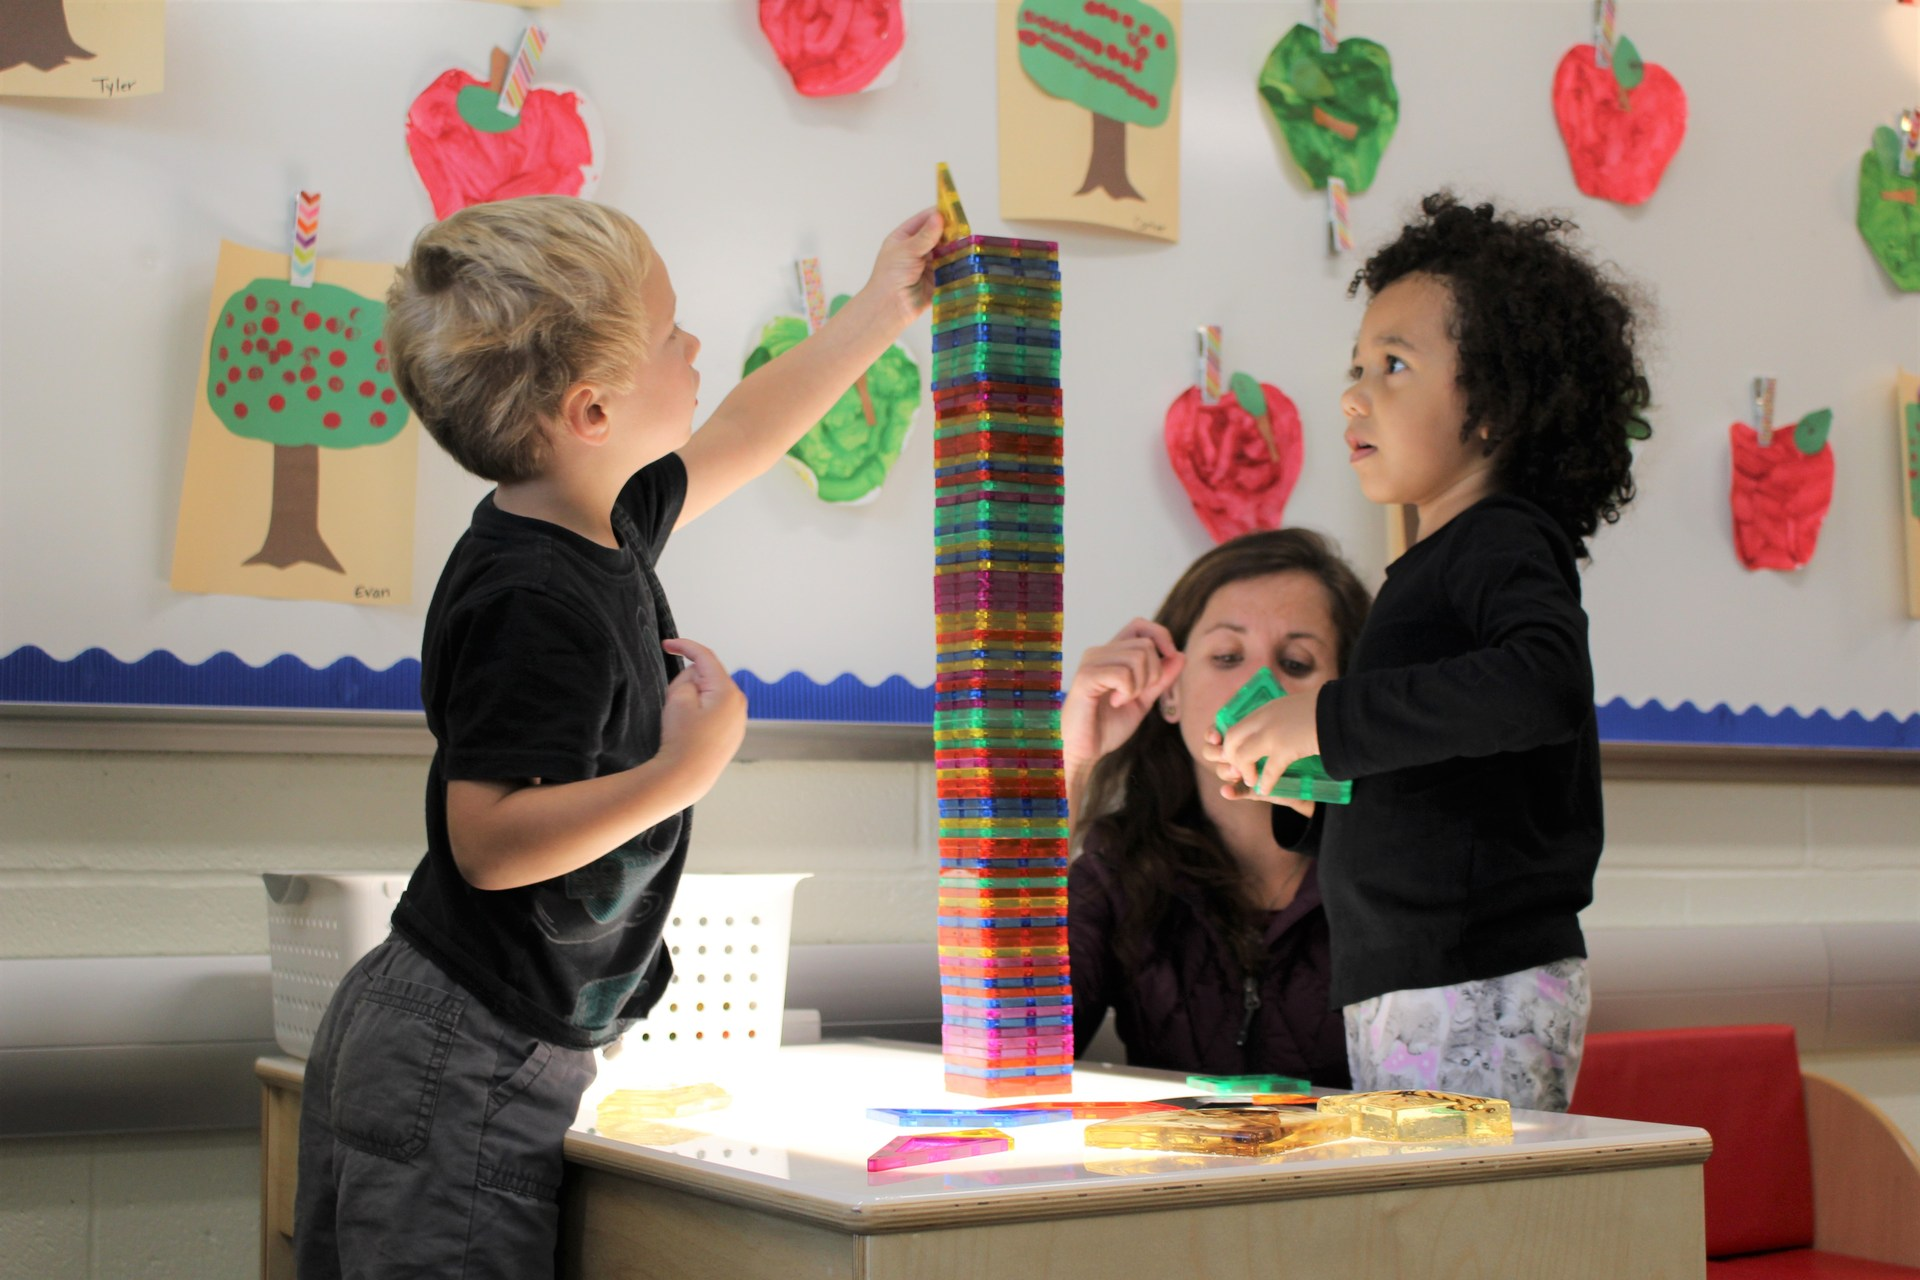 boy and girl in preschool stack blocks on lighted table